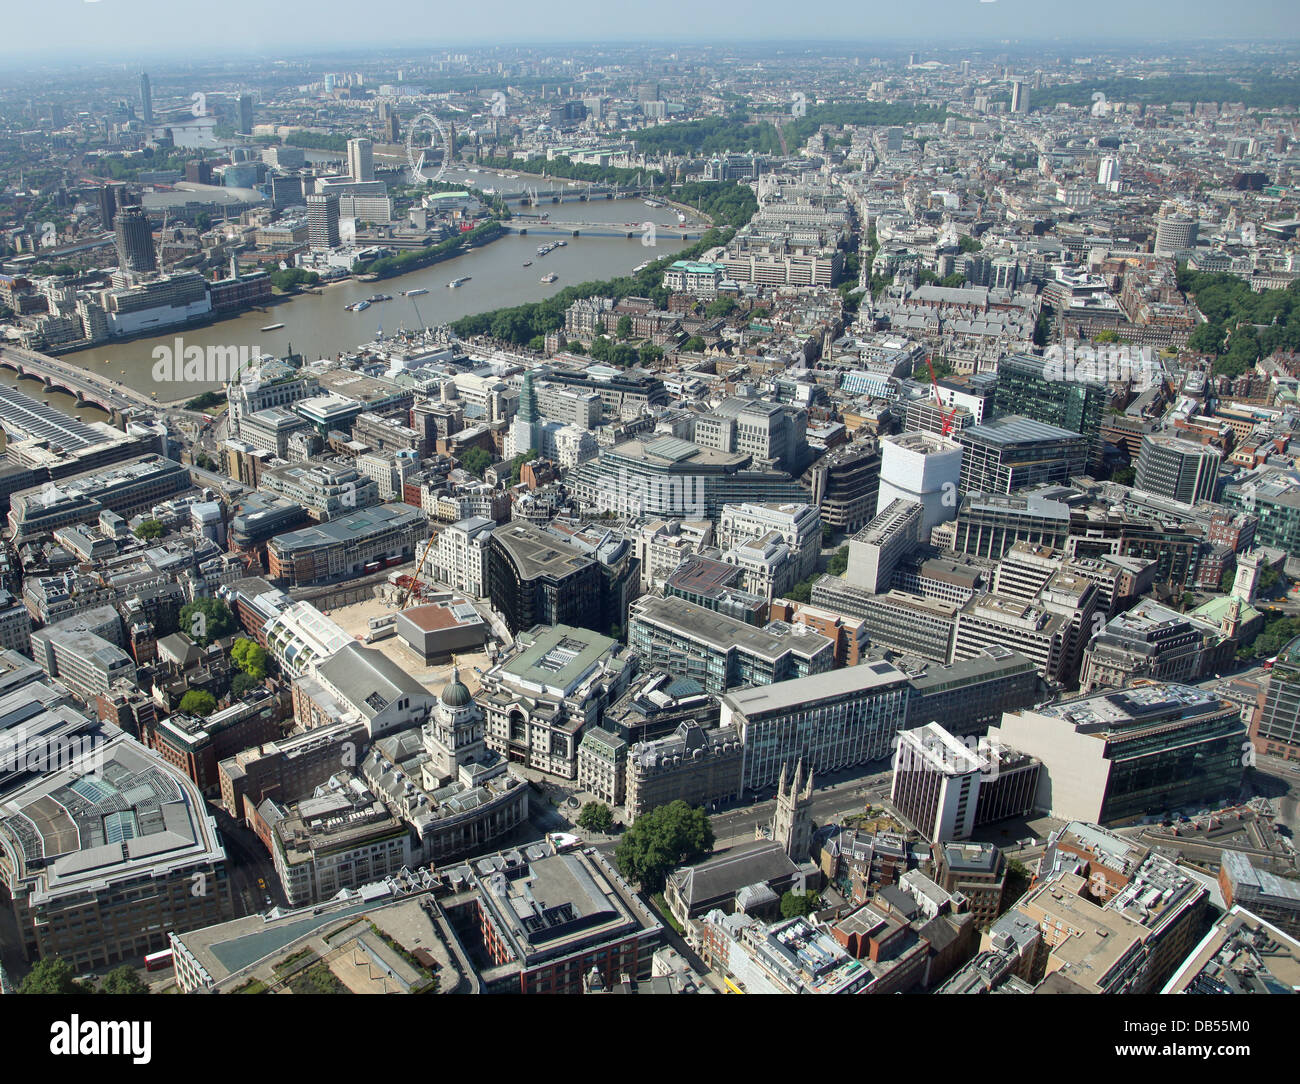 aerial view of London with the Old Bailey left foreground and The Thames running away to the west - Stock Image